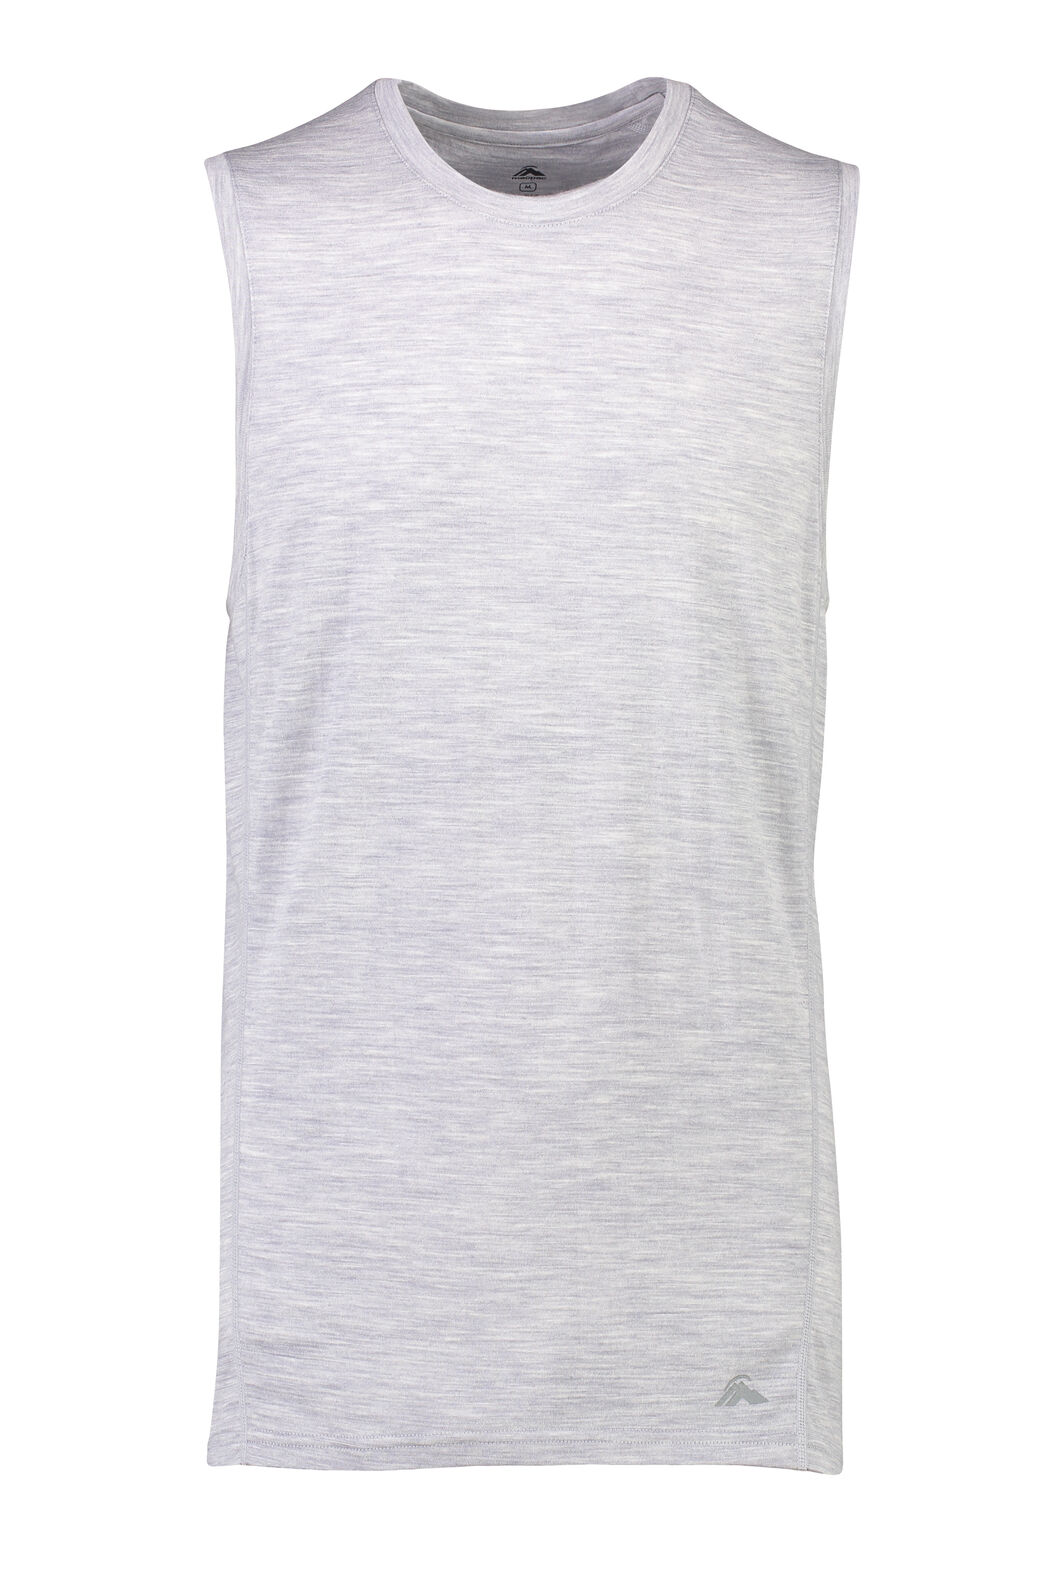 Macpac 150 Merino Singlet - Men's, Light Grey Marle, hi-res